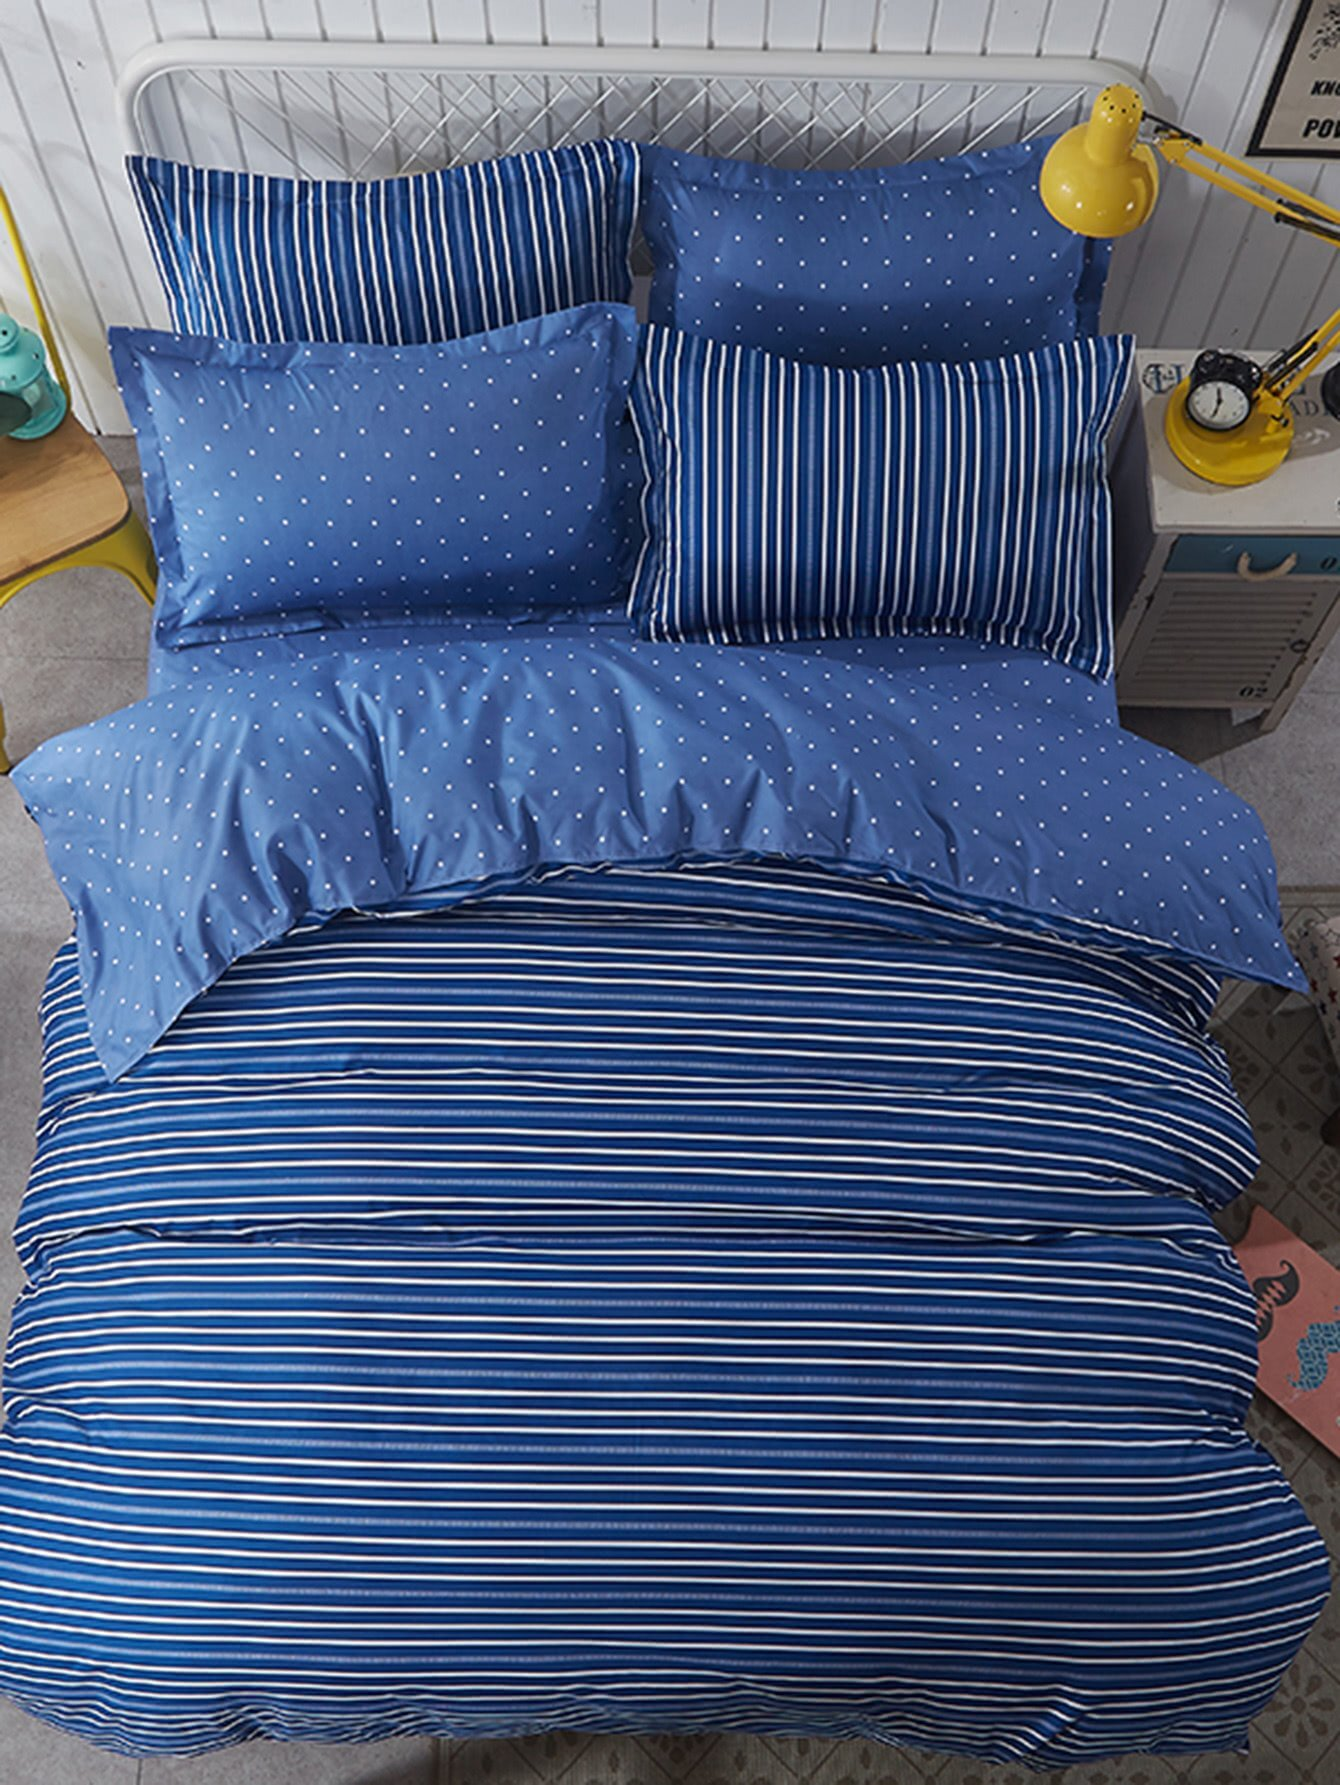 Striped & Dot Bedding Set vertical striped bedding set